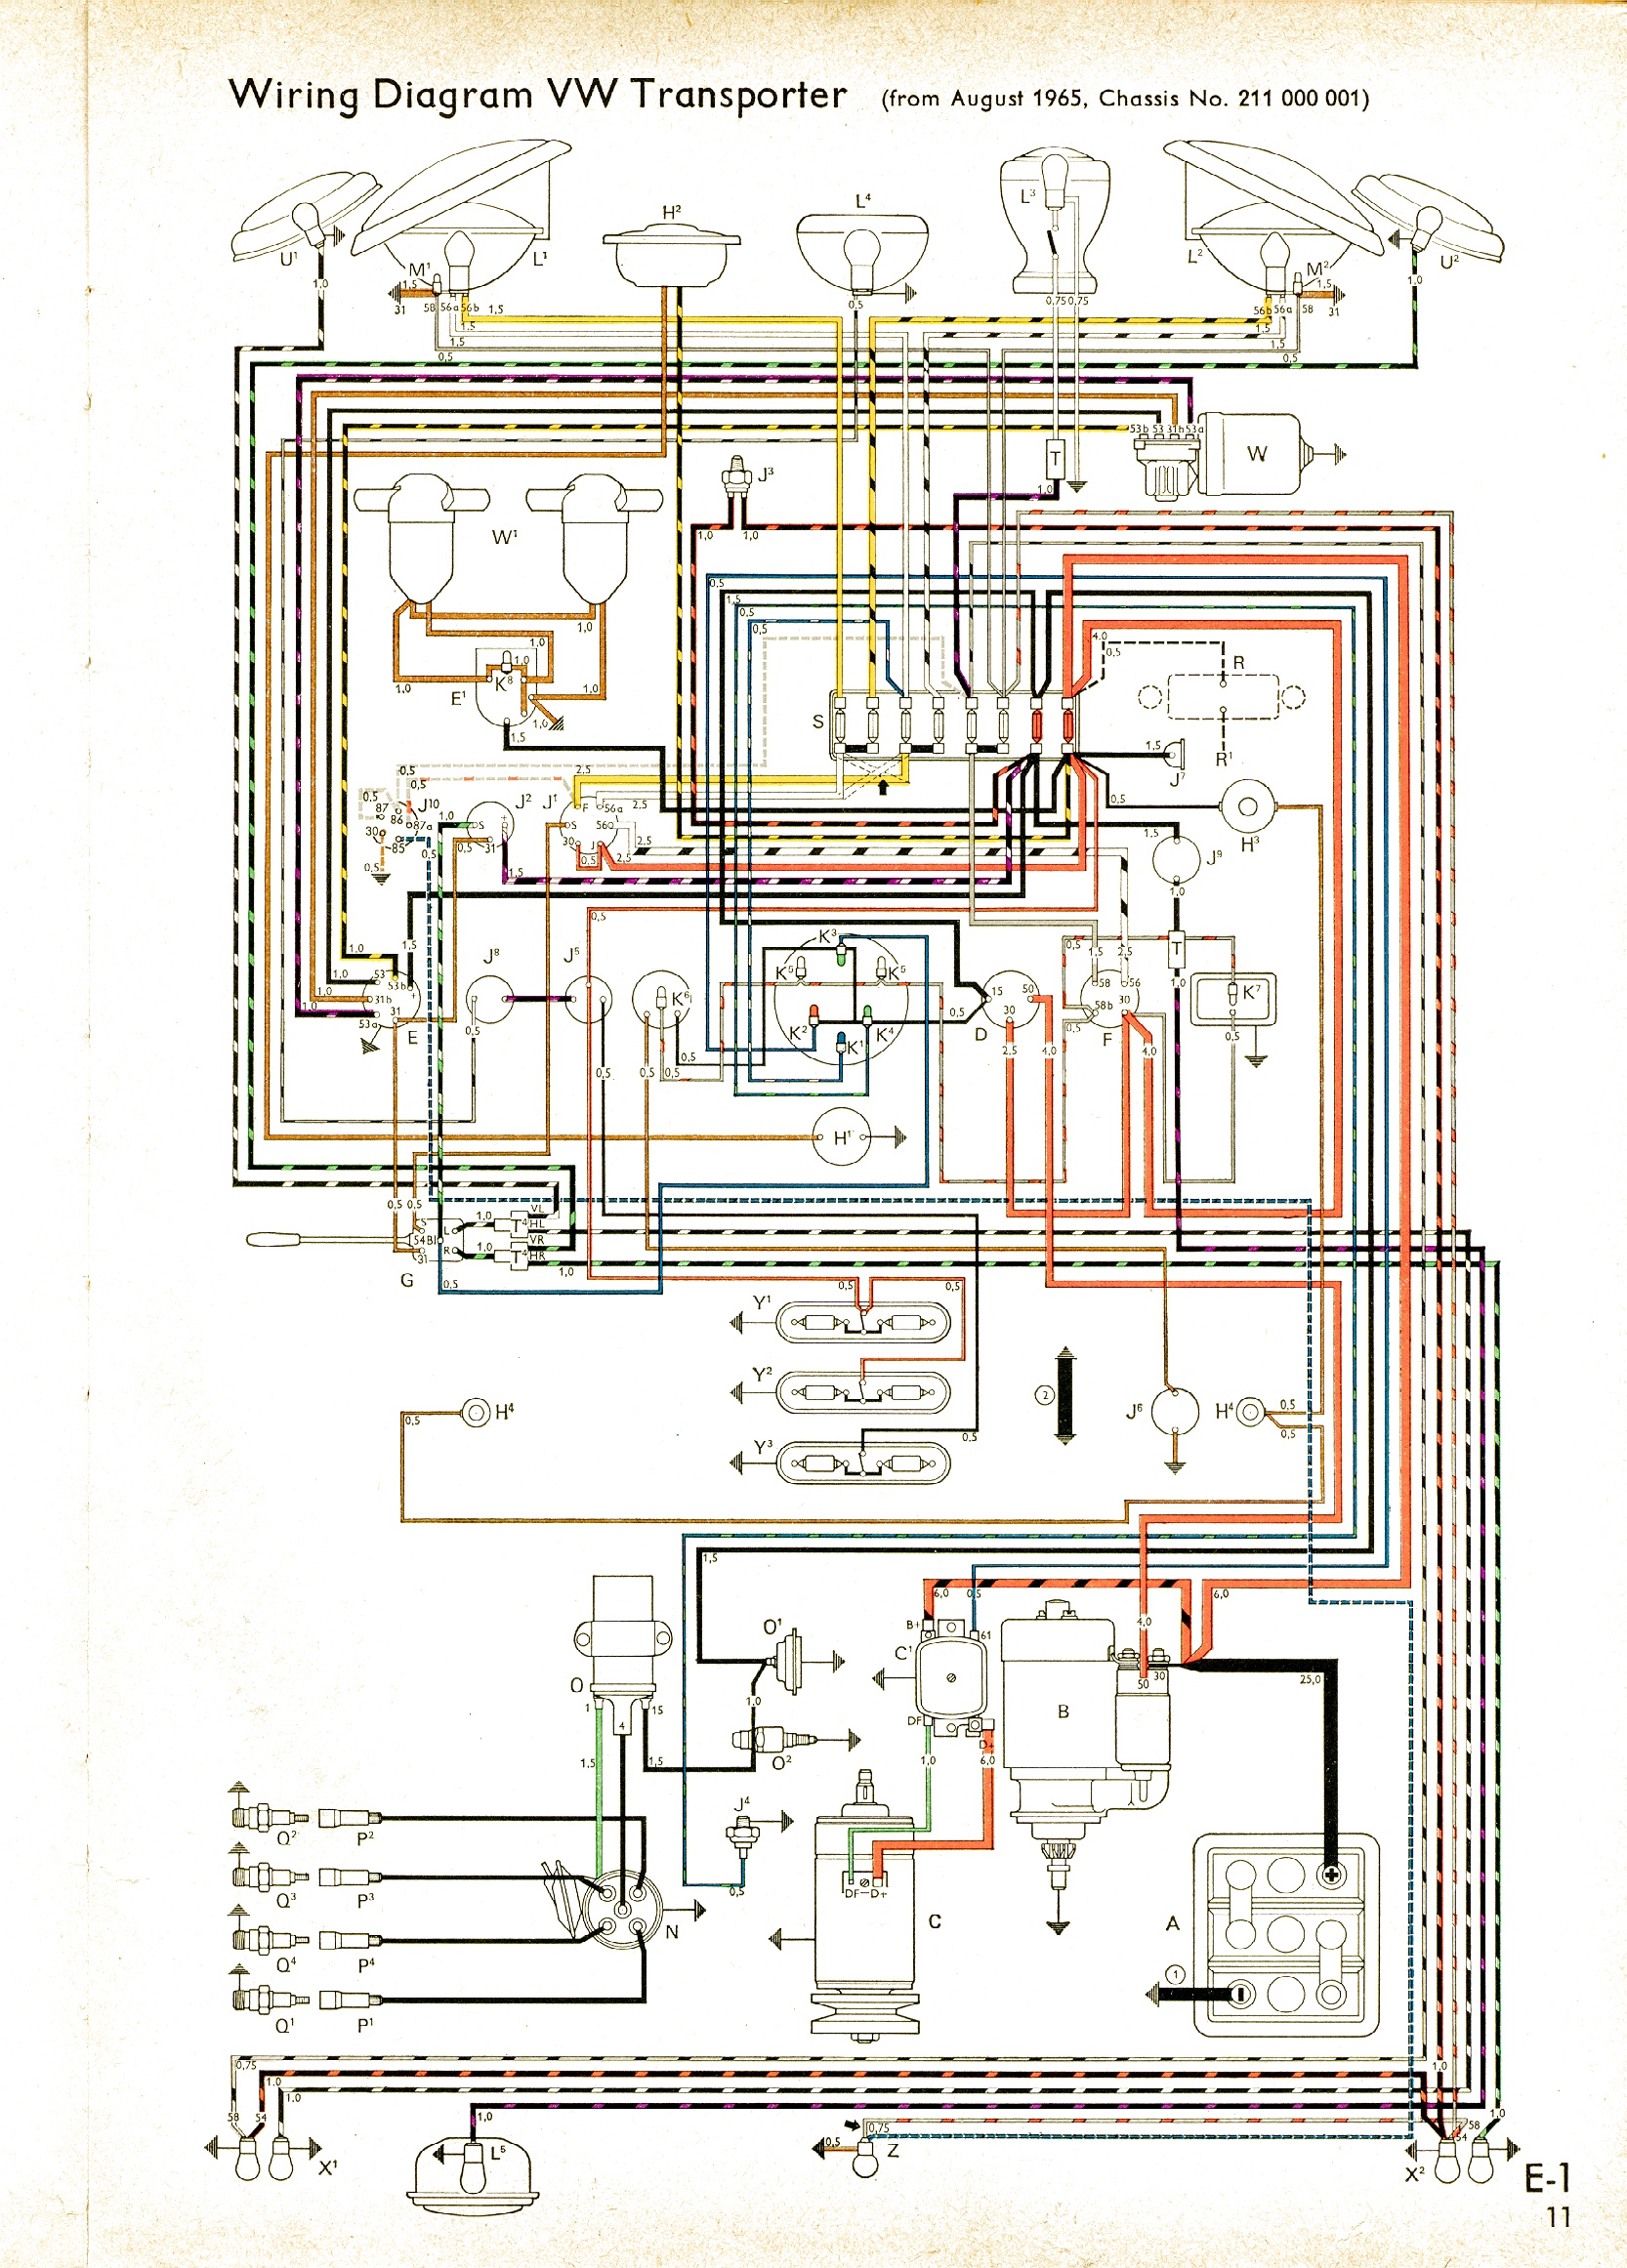 bus 65 bus wiring diagram vw wiring harness diagram \u2022 wiring diagrams j 1971 vw bus wiring diagram at gsmportal.co